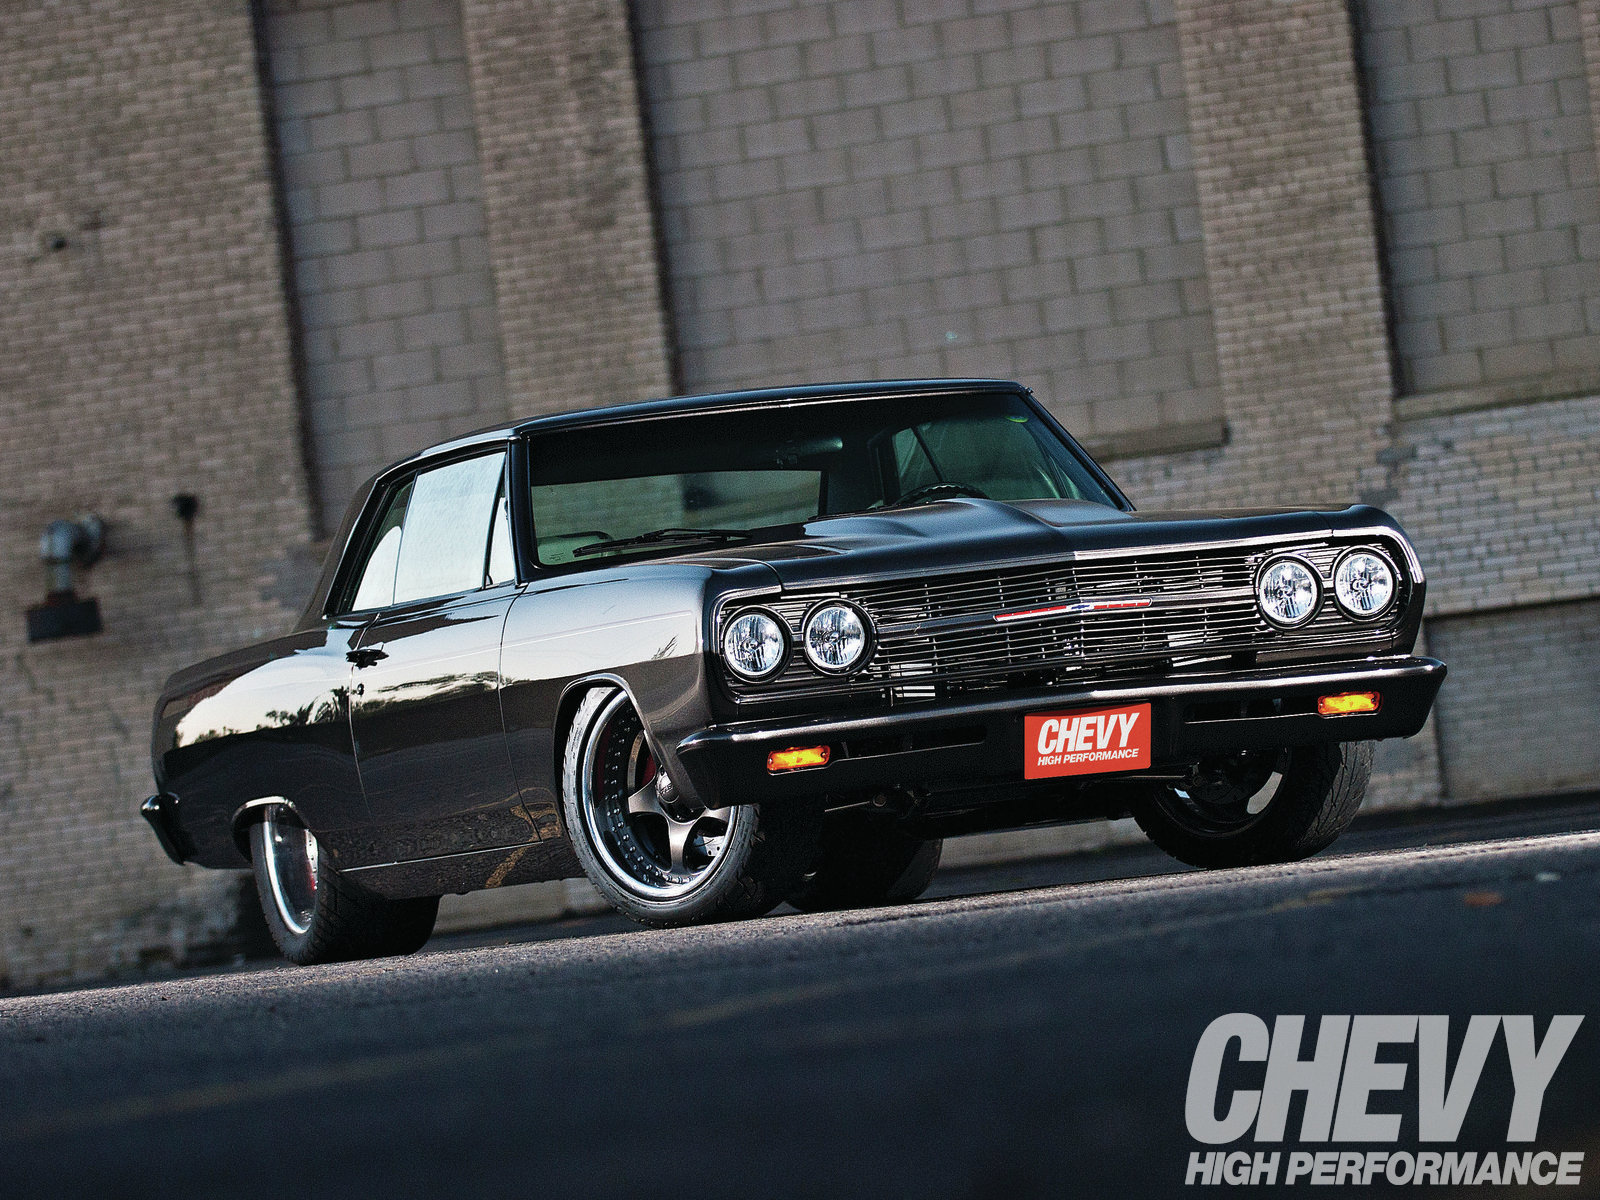 chevrolet malibu hot rod - photo #12